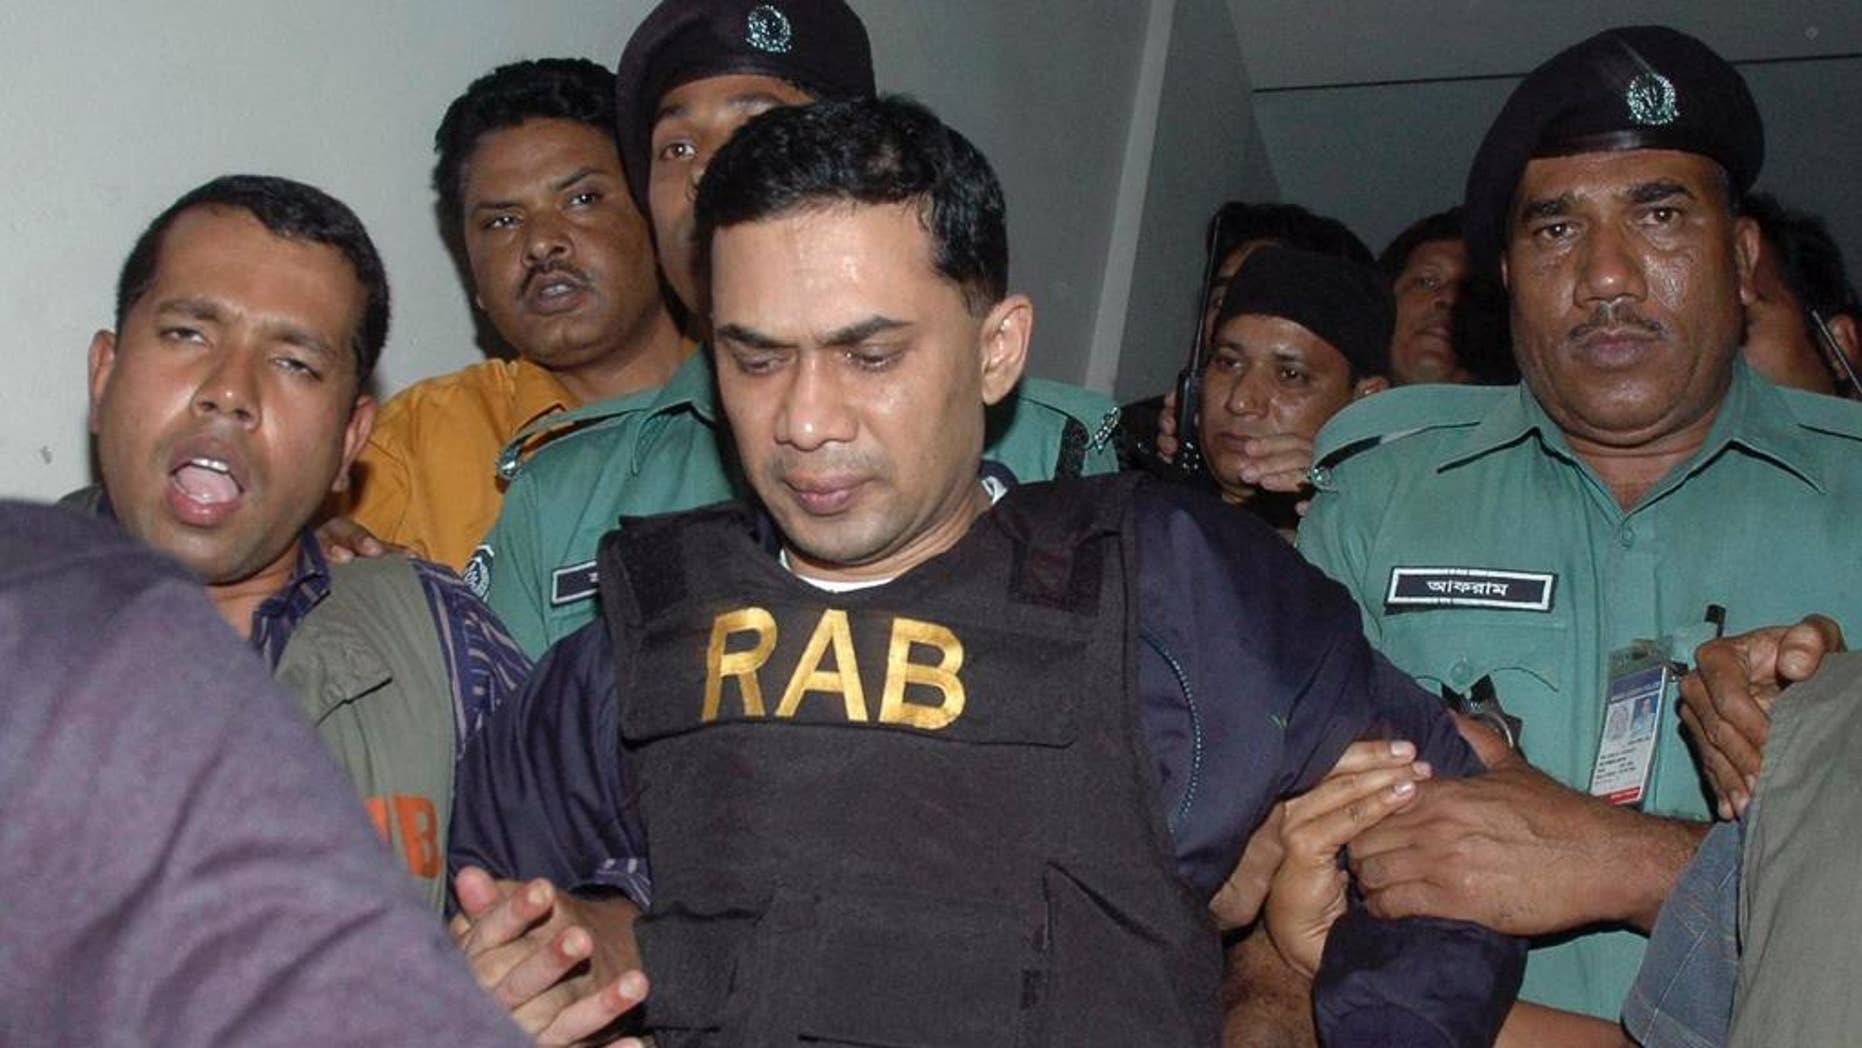 FILE - In this March 8, 2007 file photo, Tarique Rahman, center, who was charged with receiving bribes, is escorted by Bangladeshi security personnel to a court in Dhaka, Bangladesh. Bangladesh's High Court on Thursday, July 21, 2016 sentenced Rahman the son of the country's top opposition leader Khaleda Zia to seven years in jail in a money laundering case, overturning an acquittal handed down by a lower court. (AP Photo/Indrajit Kumer Ghosh, File)